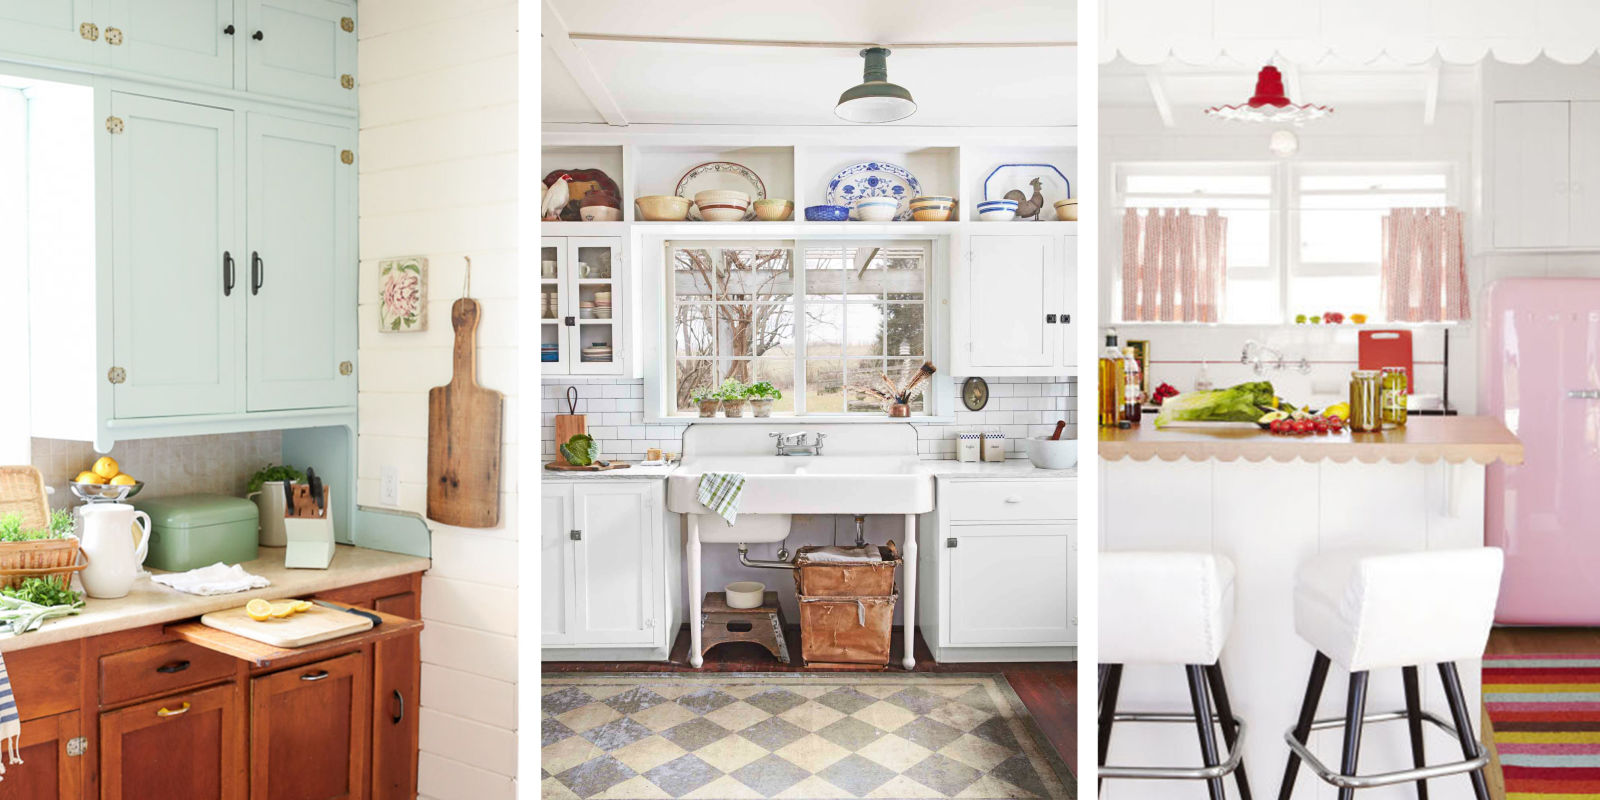 Antiq Kitchen Set Design Ideas ~ Vintage kitchen decorating ideas design inspiration